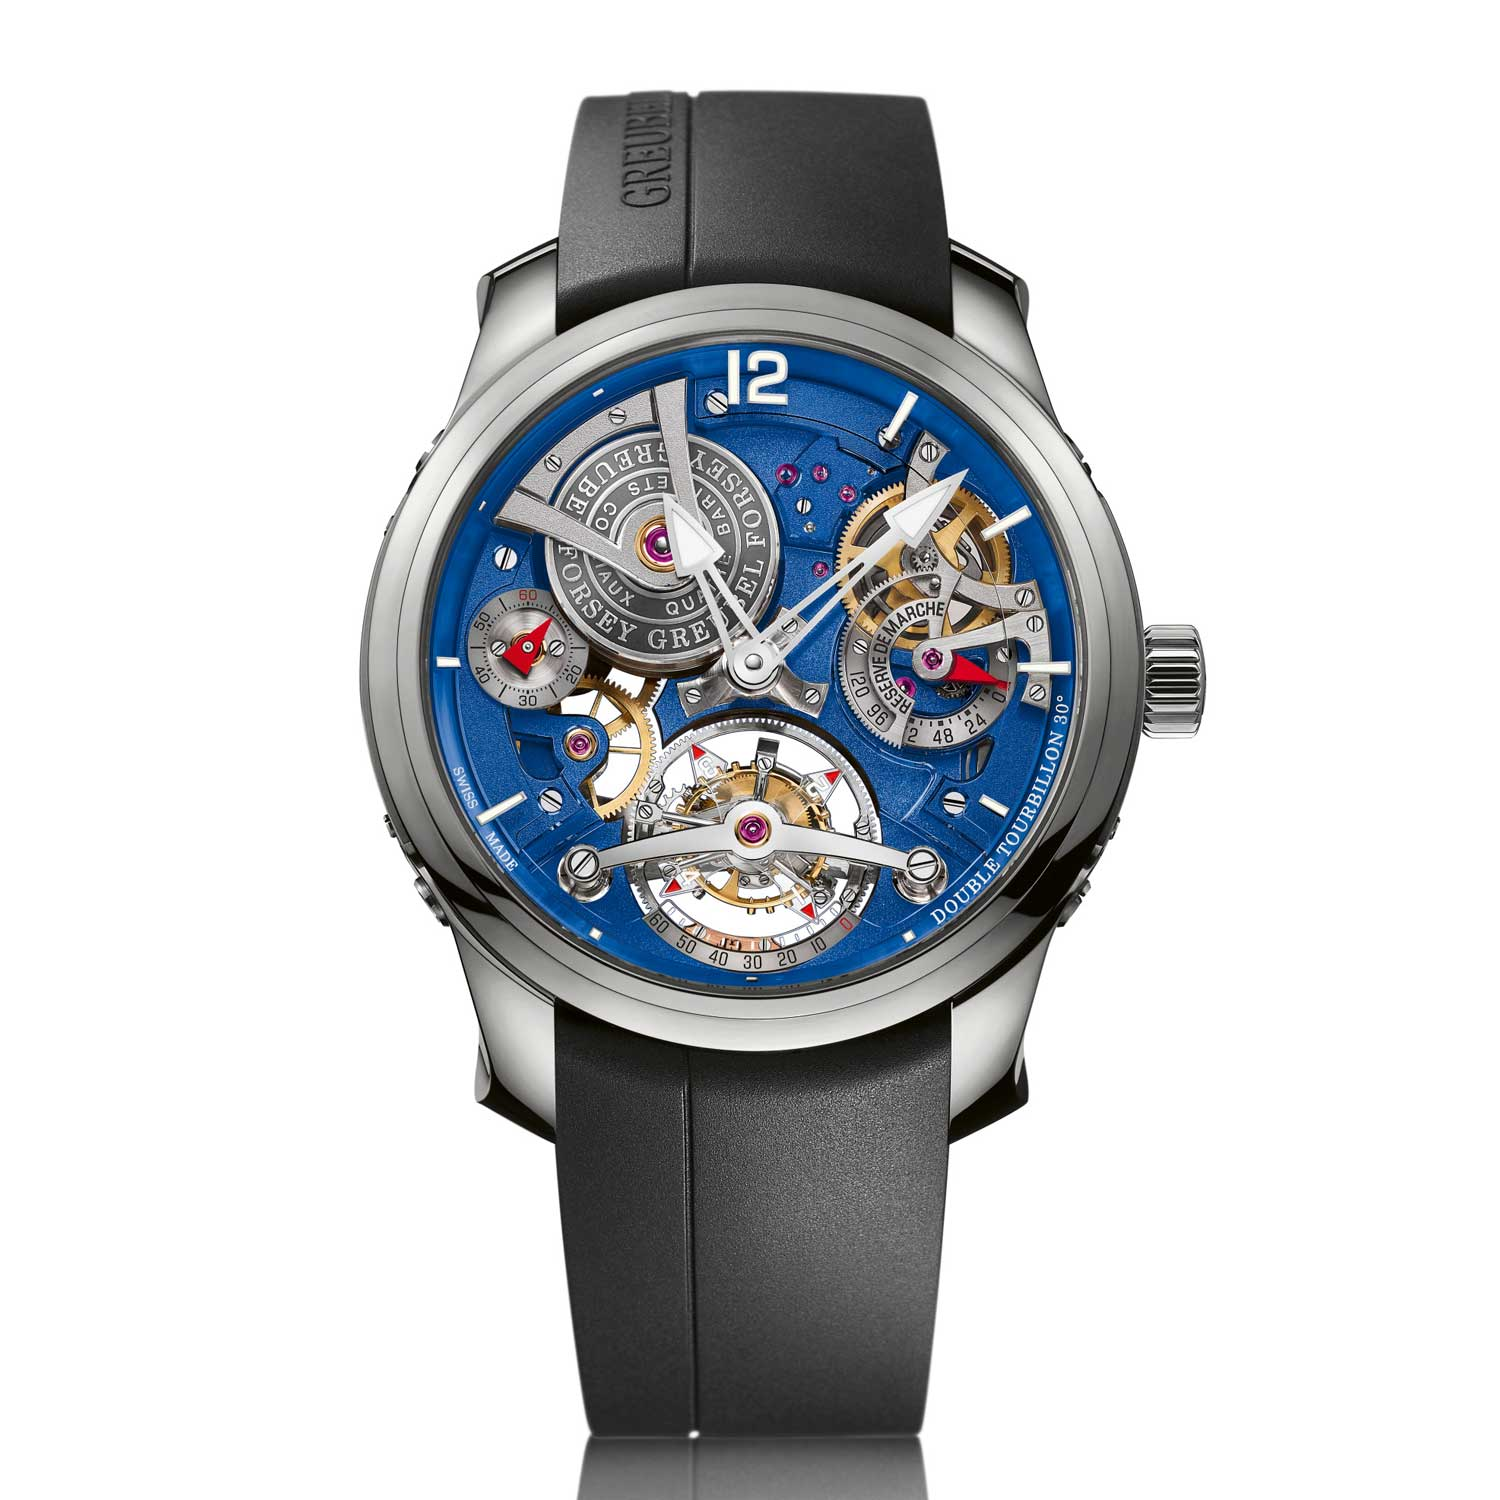 The Double Tourbillon 30° Technique with a four-minute outer cage and an inner cage that houses an inclined balance wheel